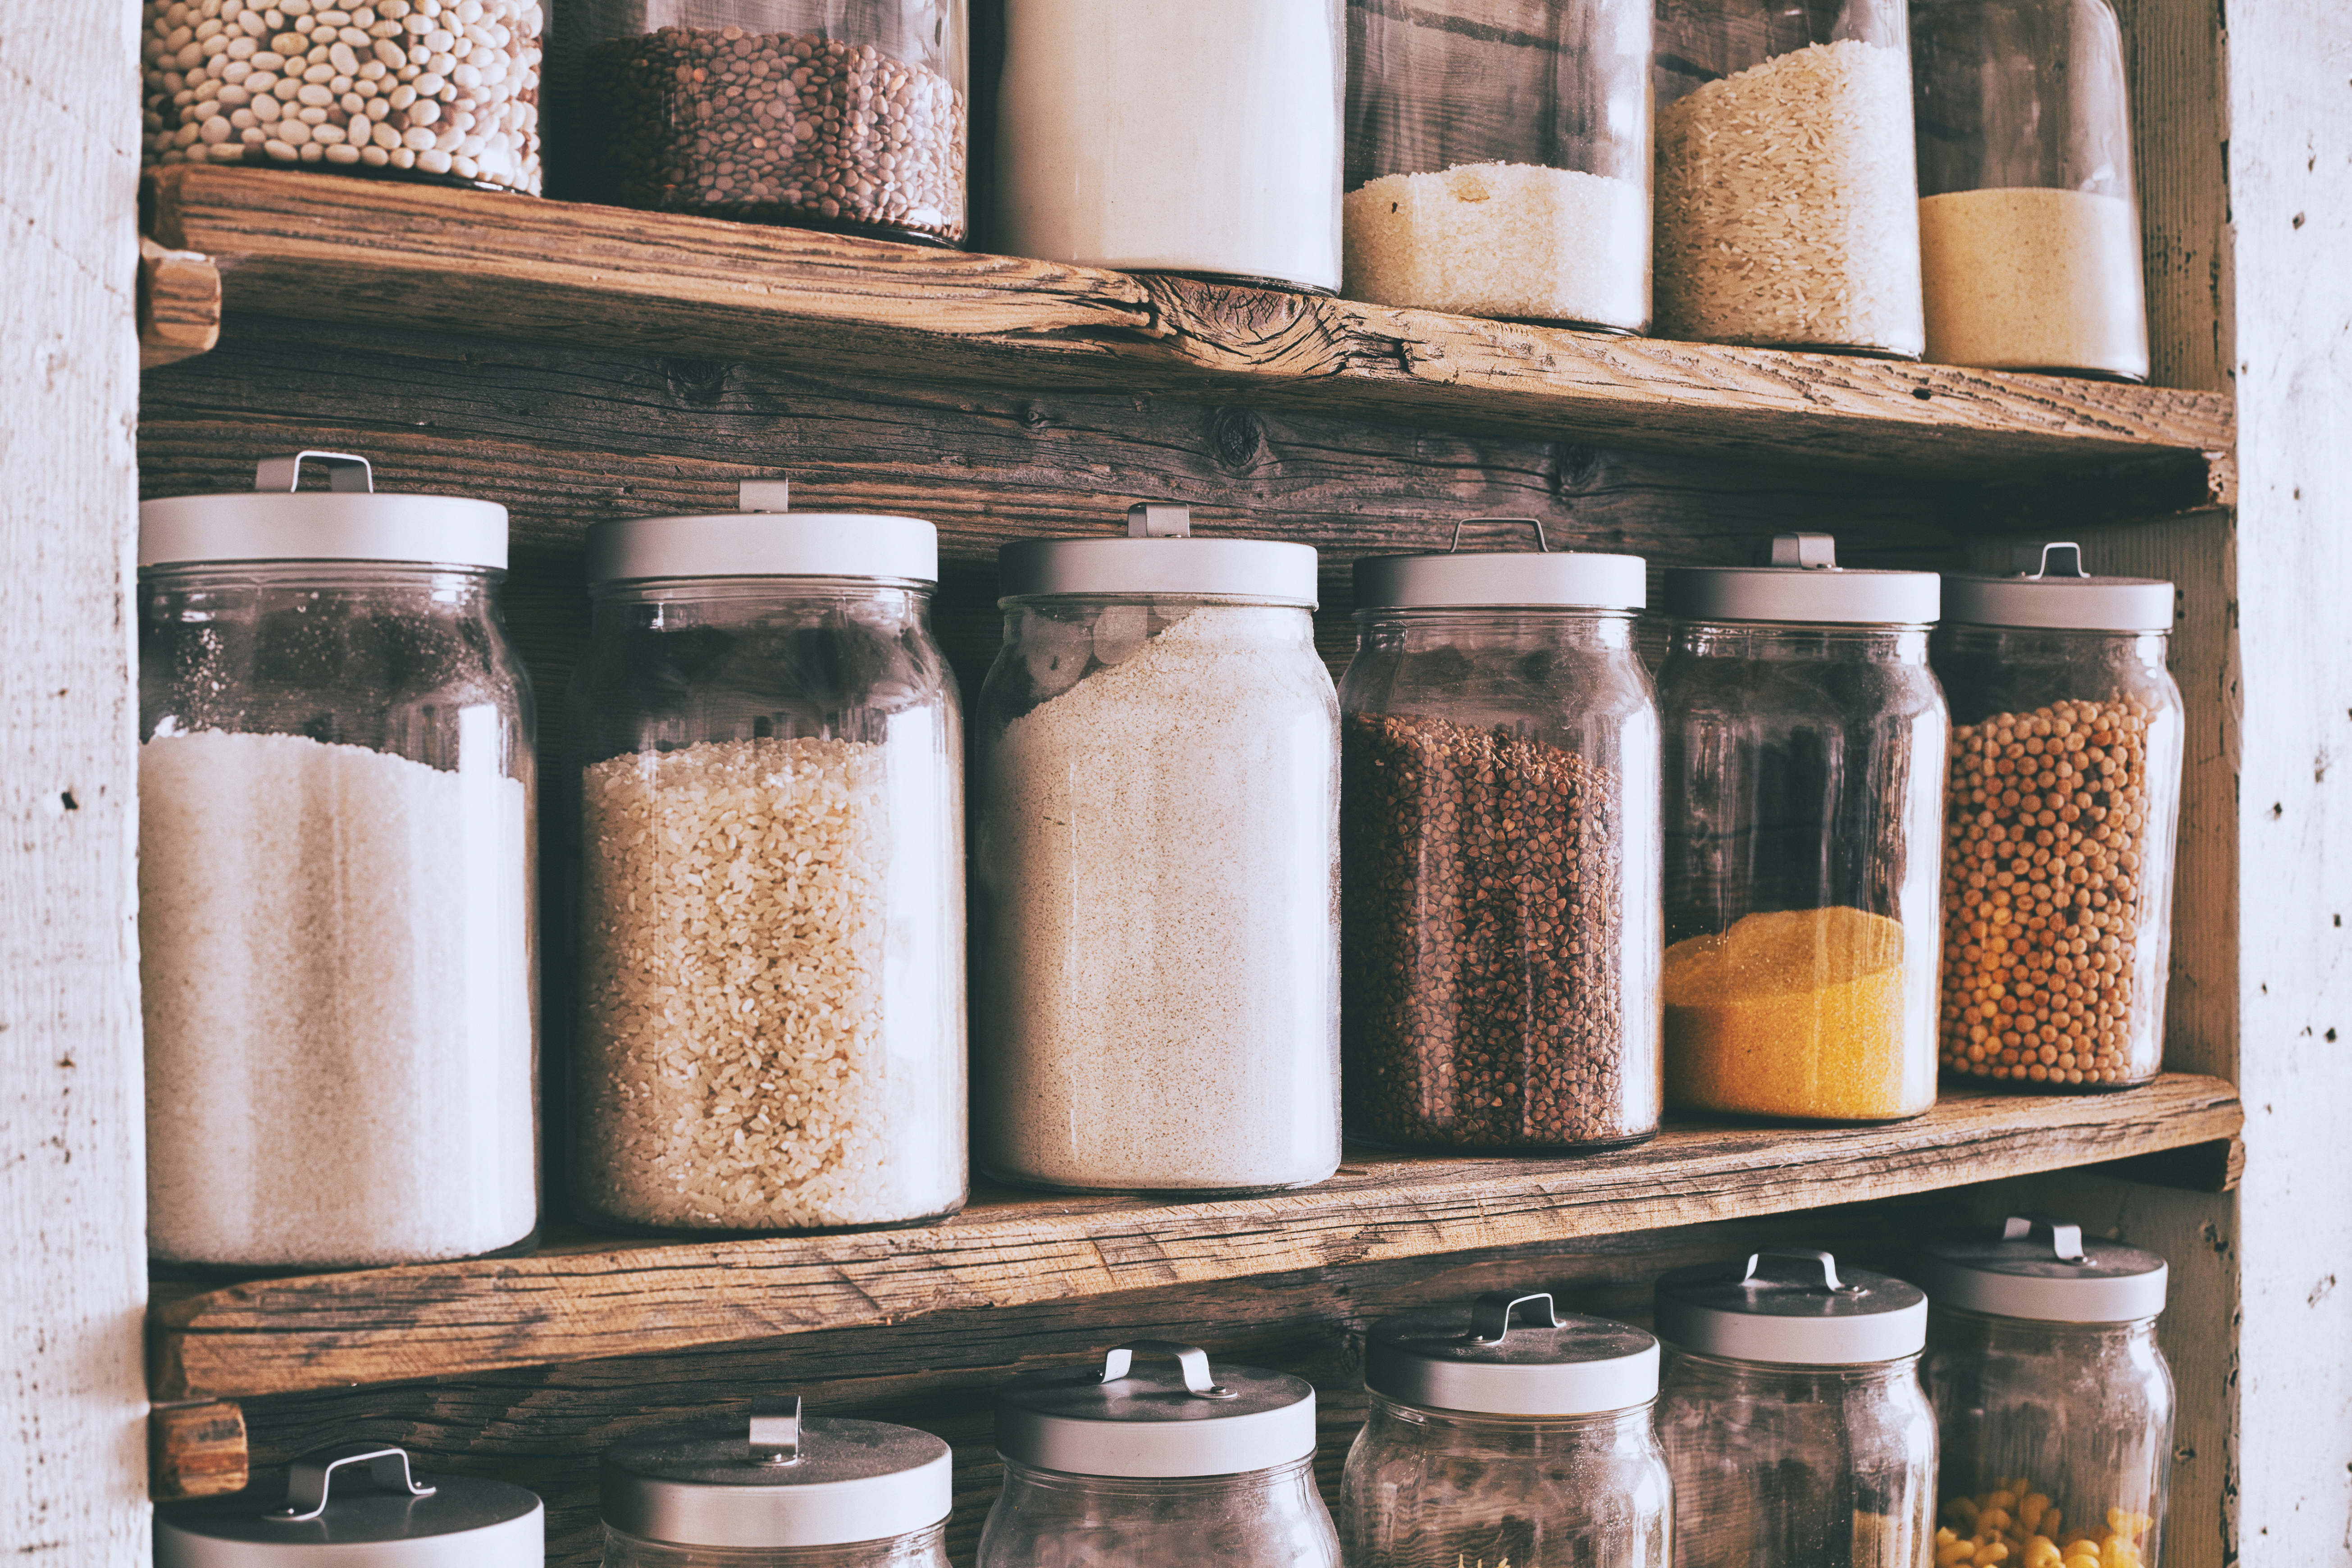 Dried beans and cereal stored in glass jars.